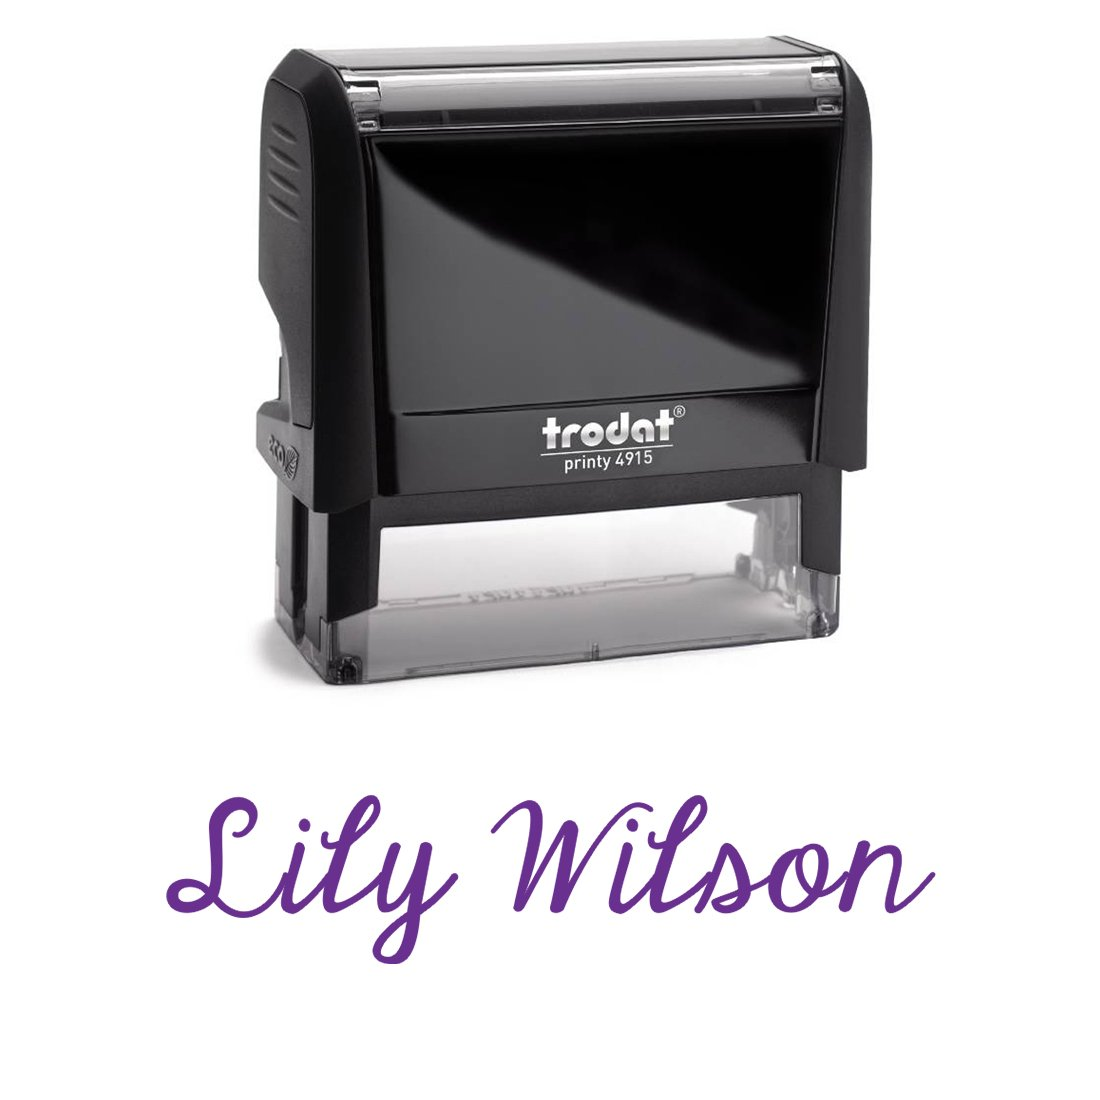 Personalized Custom Signature Stamp. Great Labelling Self Inking Stamp With Unique Font. Perfect For Bank Deposits, Registered Nurses, Home, Office Or School Purple Ink, Self Inking Stamp